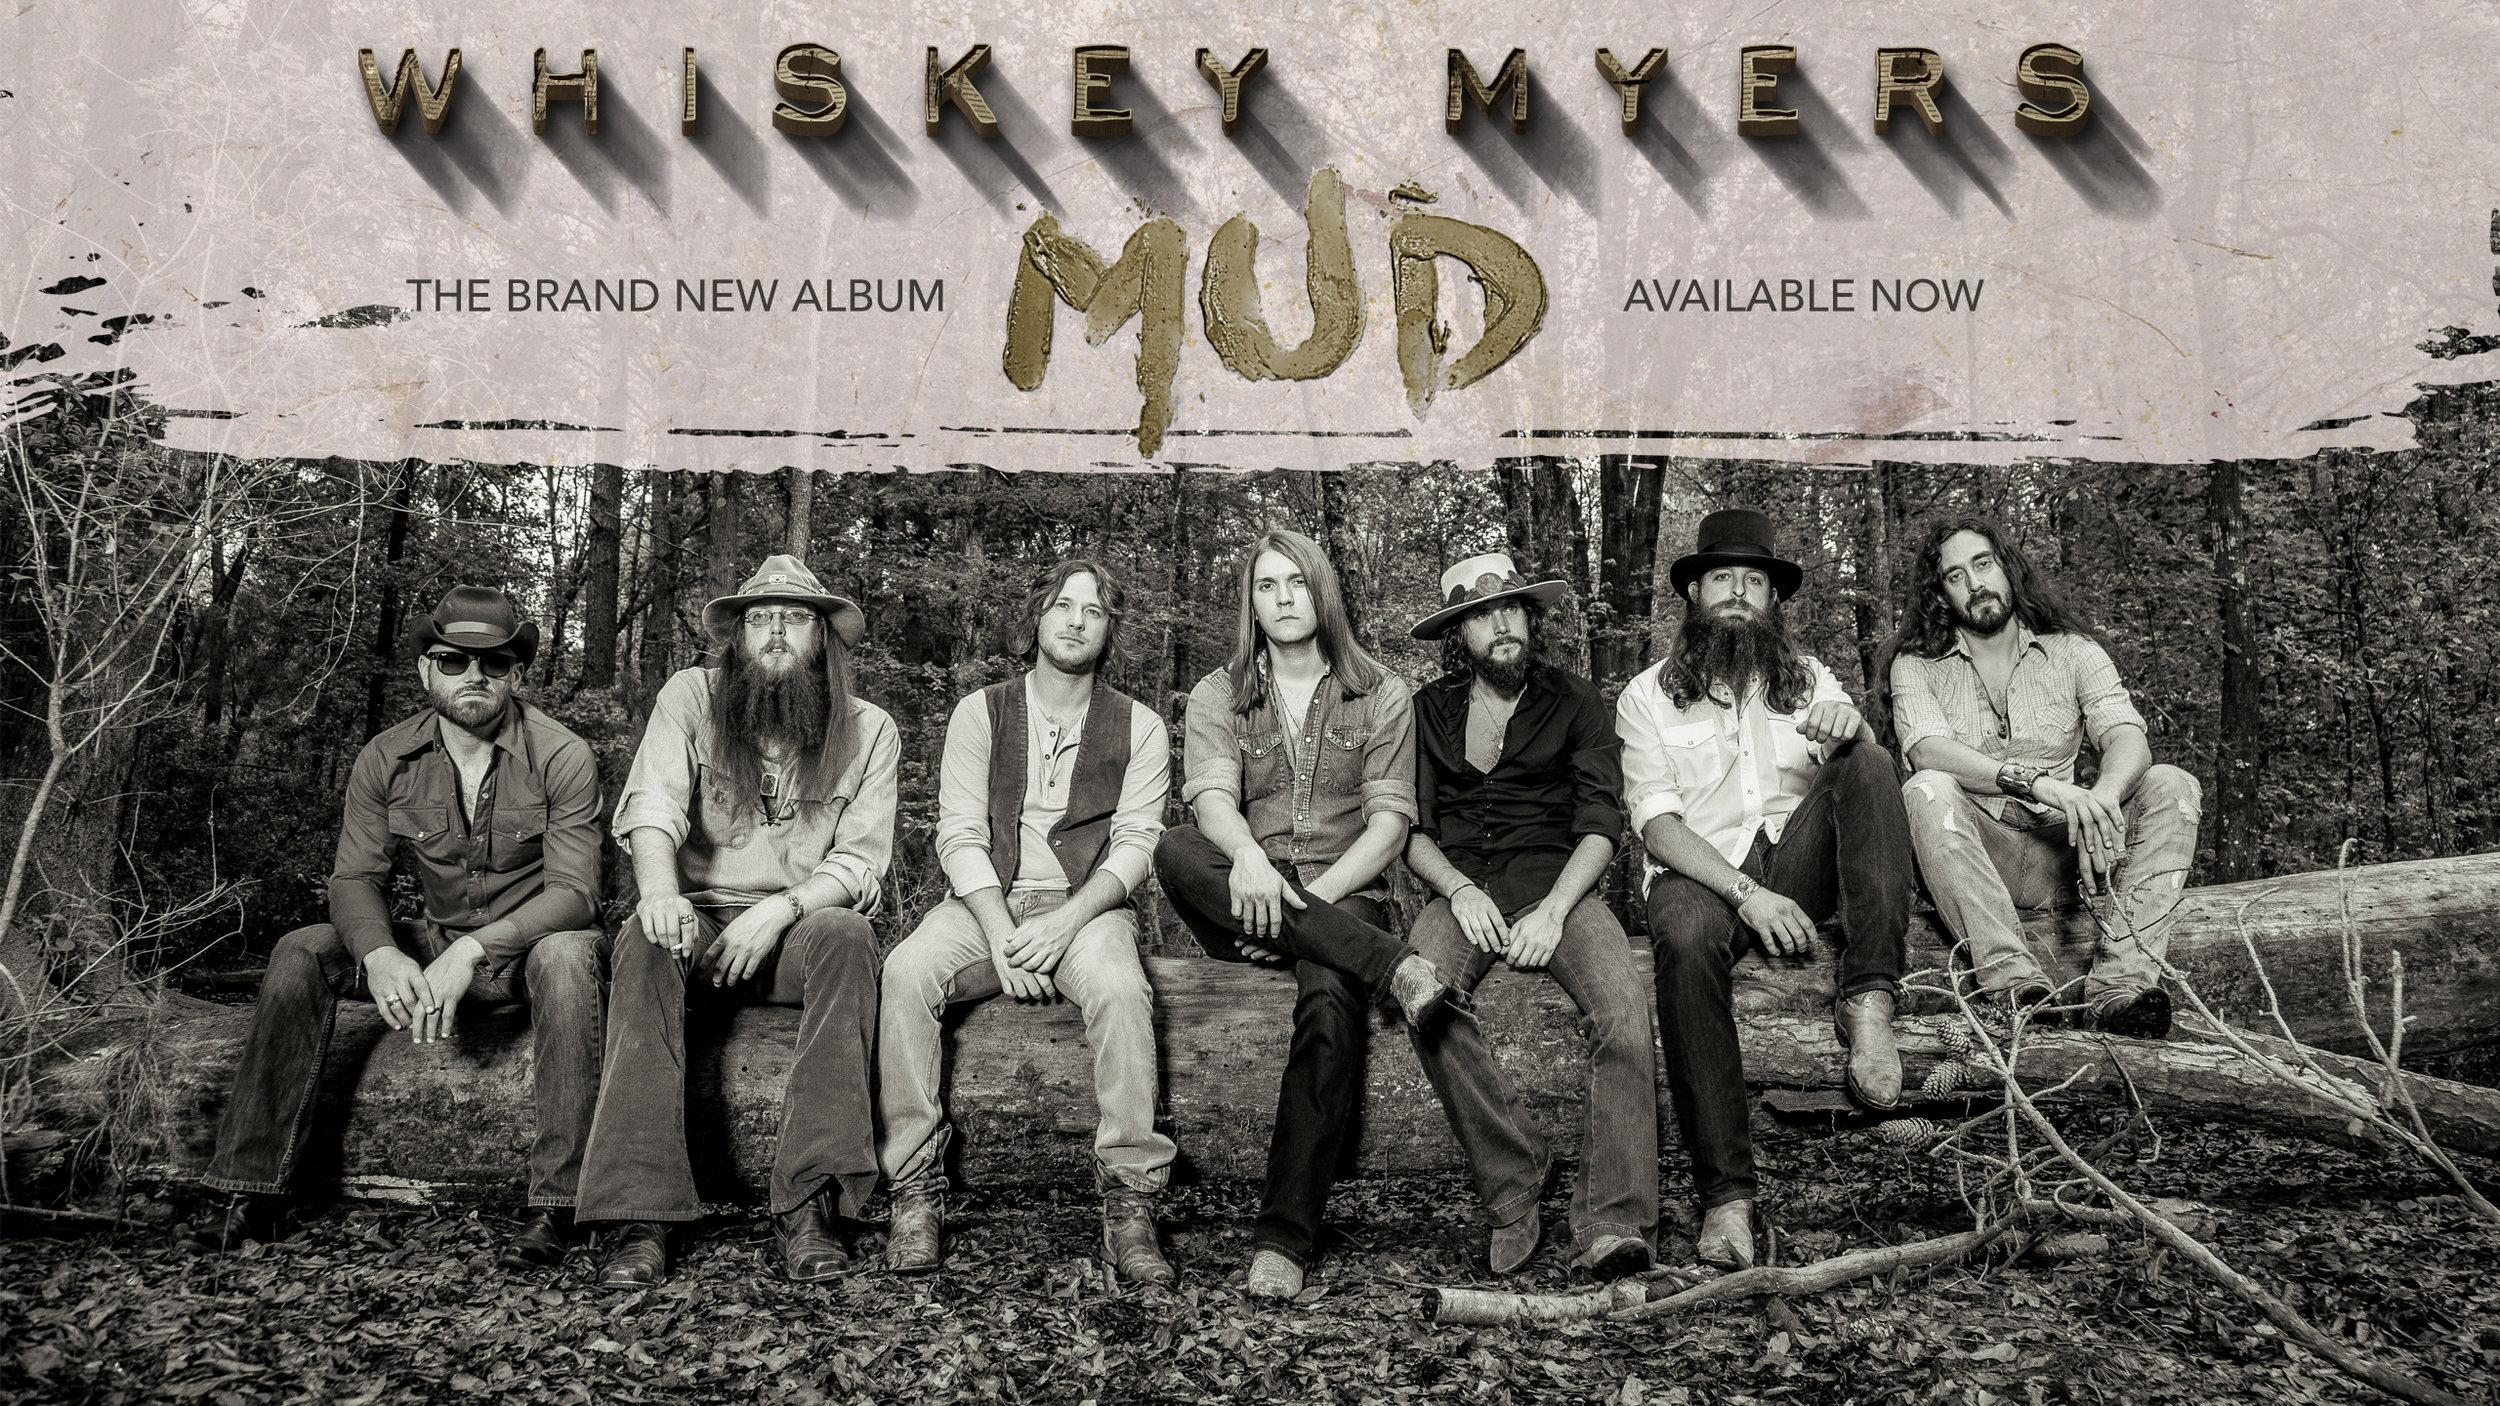 Whiskey Myers to rock the Warehouse March 18th with Josh Field Band opening